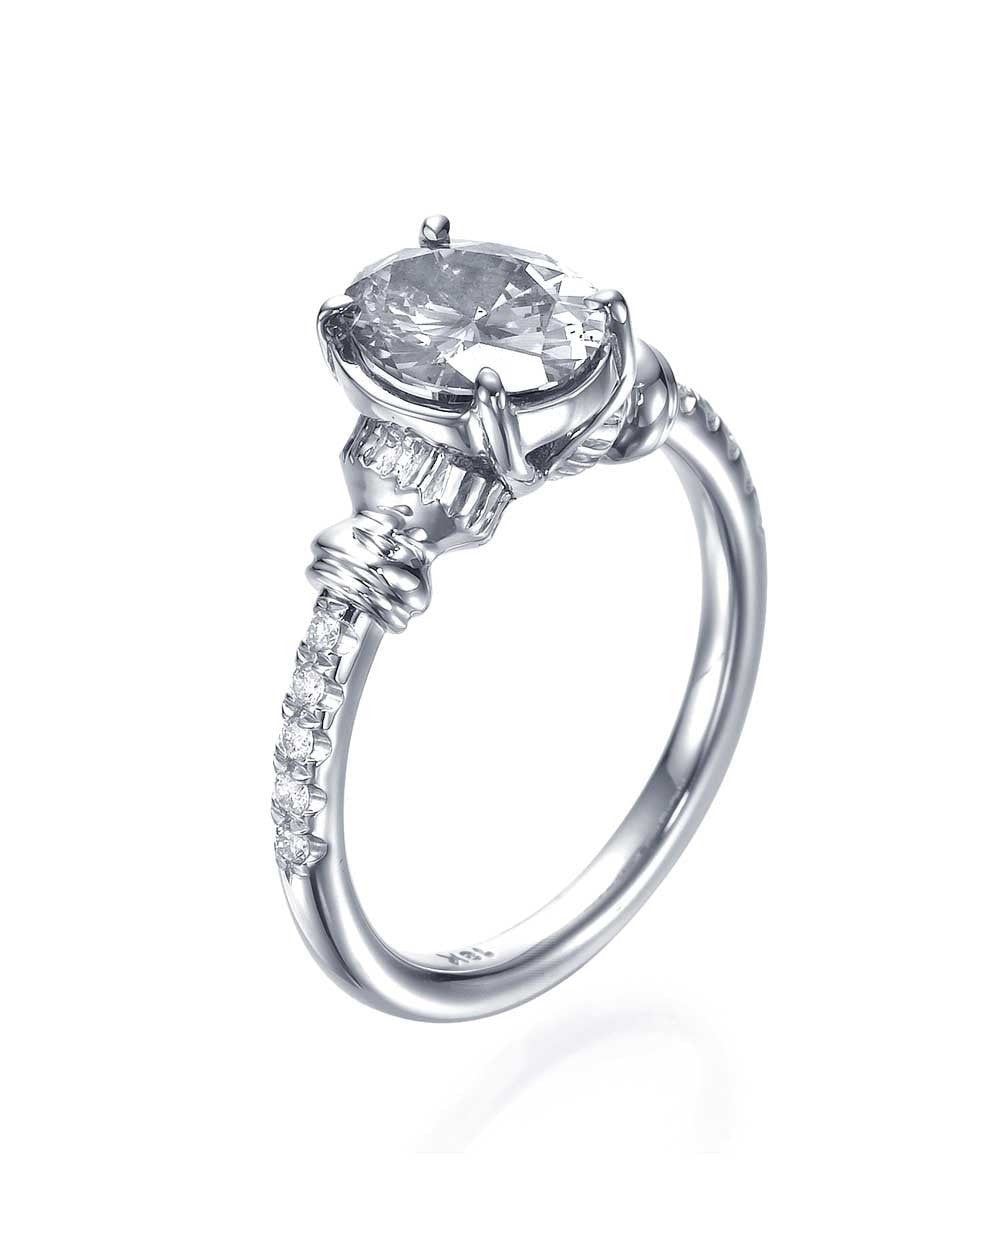 Engagement Rings 1.15 carat Oval Cut Engagement Ring - Vintage Style with Diamonds